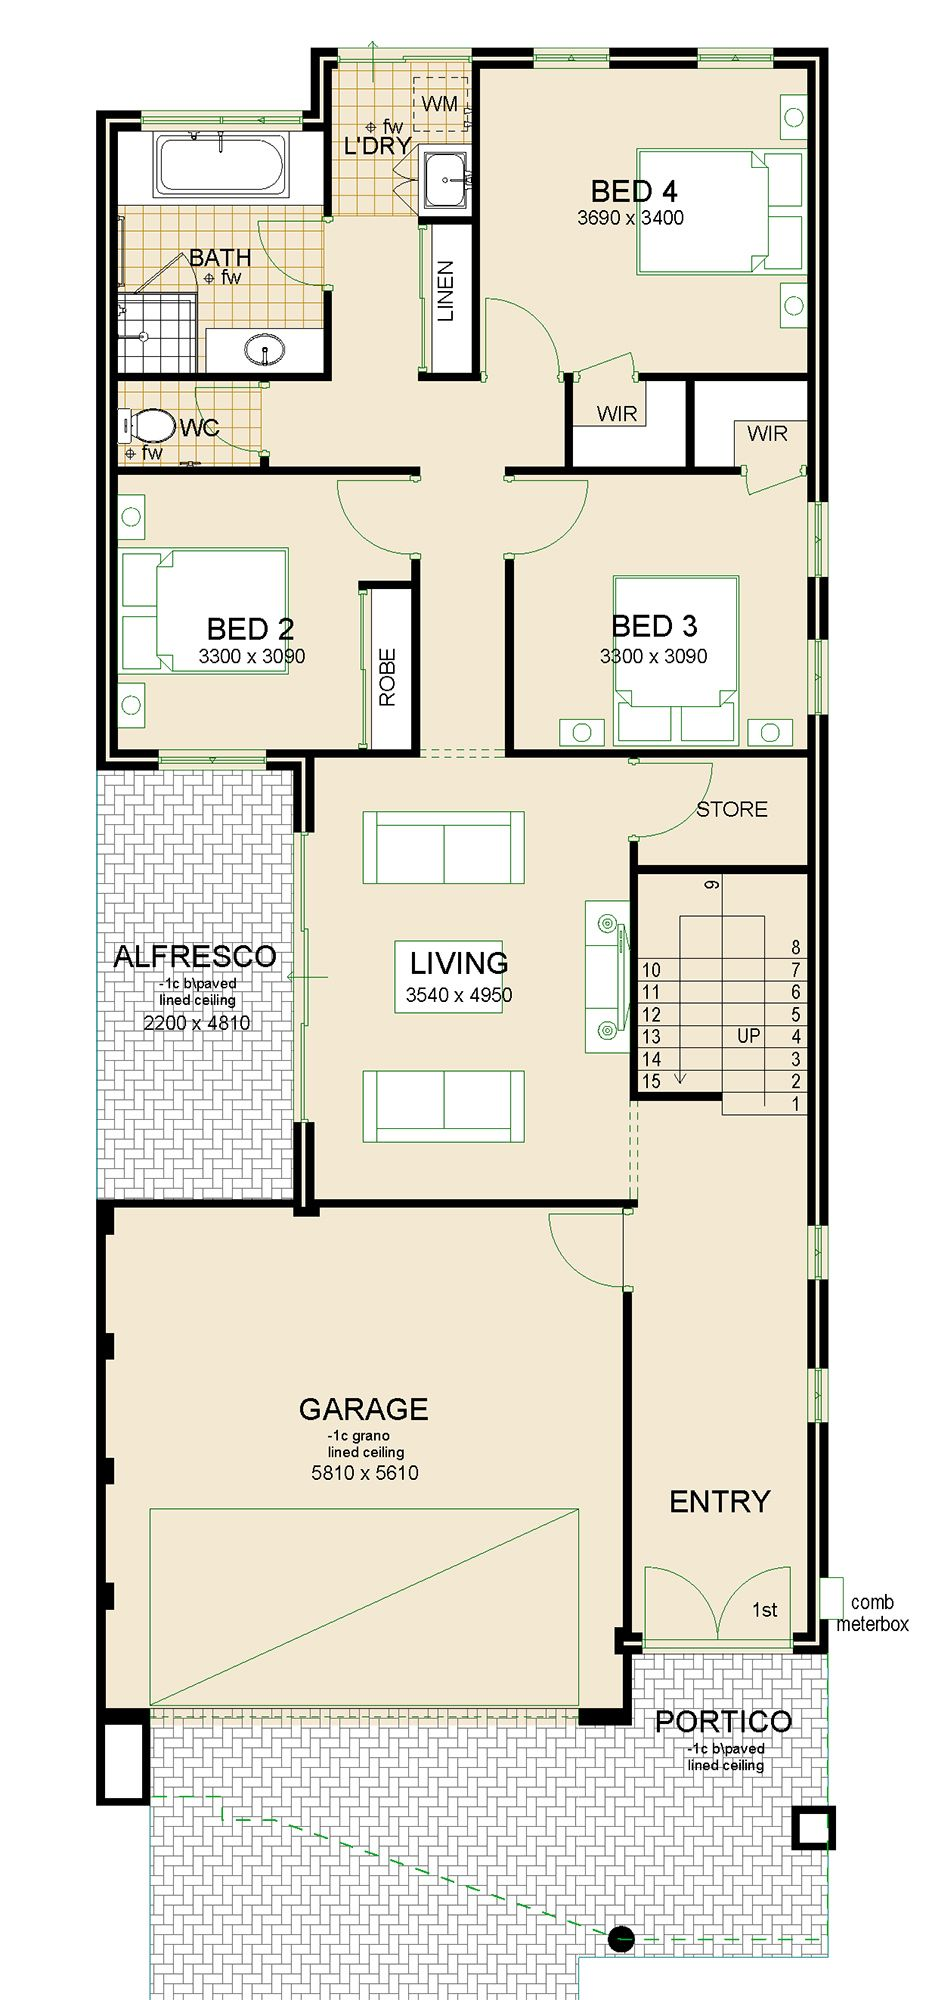 Virage house plan sample | Home designs | Pinterest | Bath, Modern ...